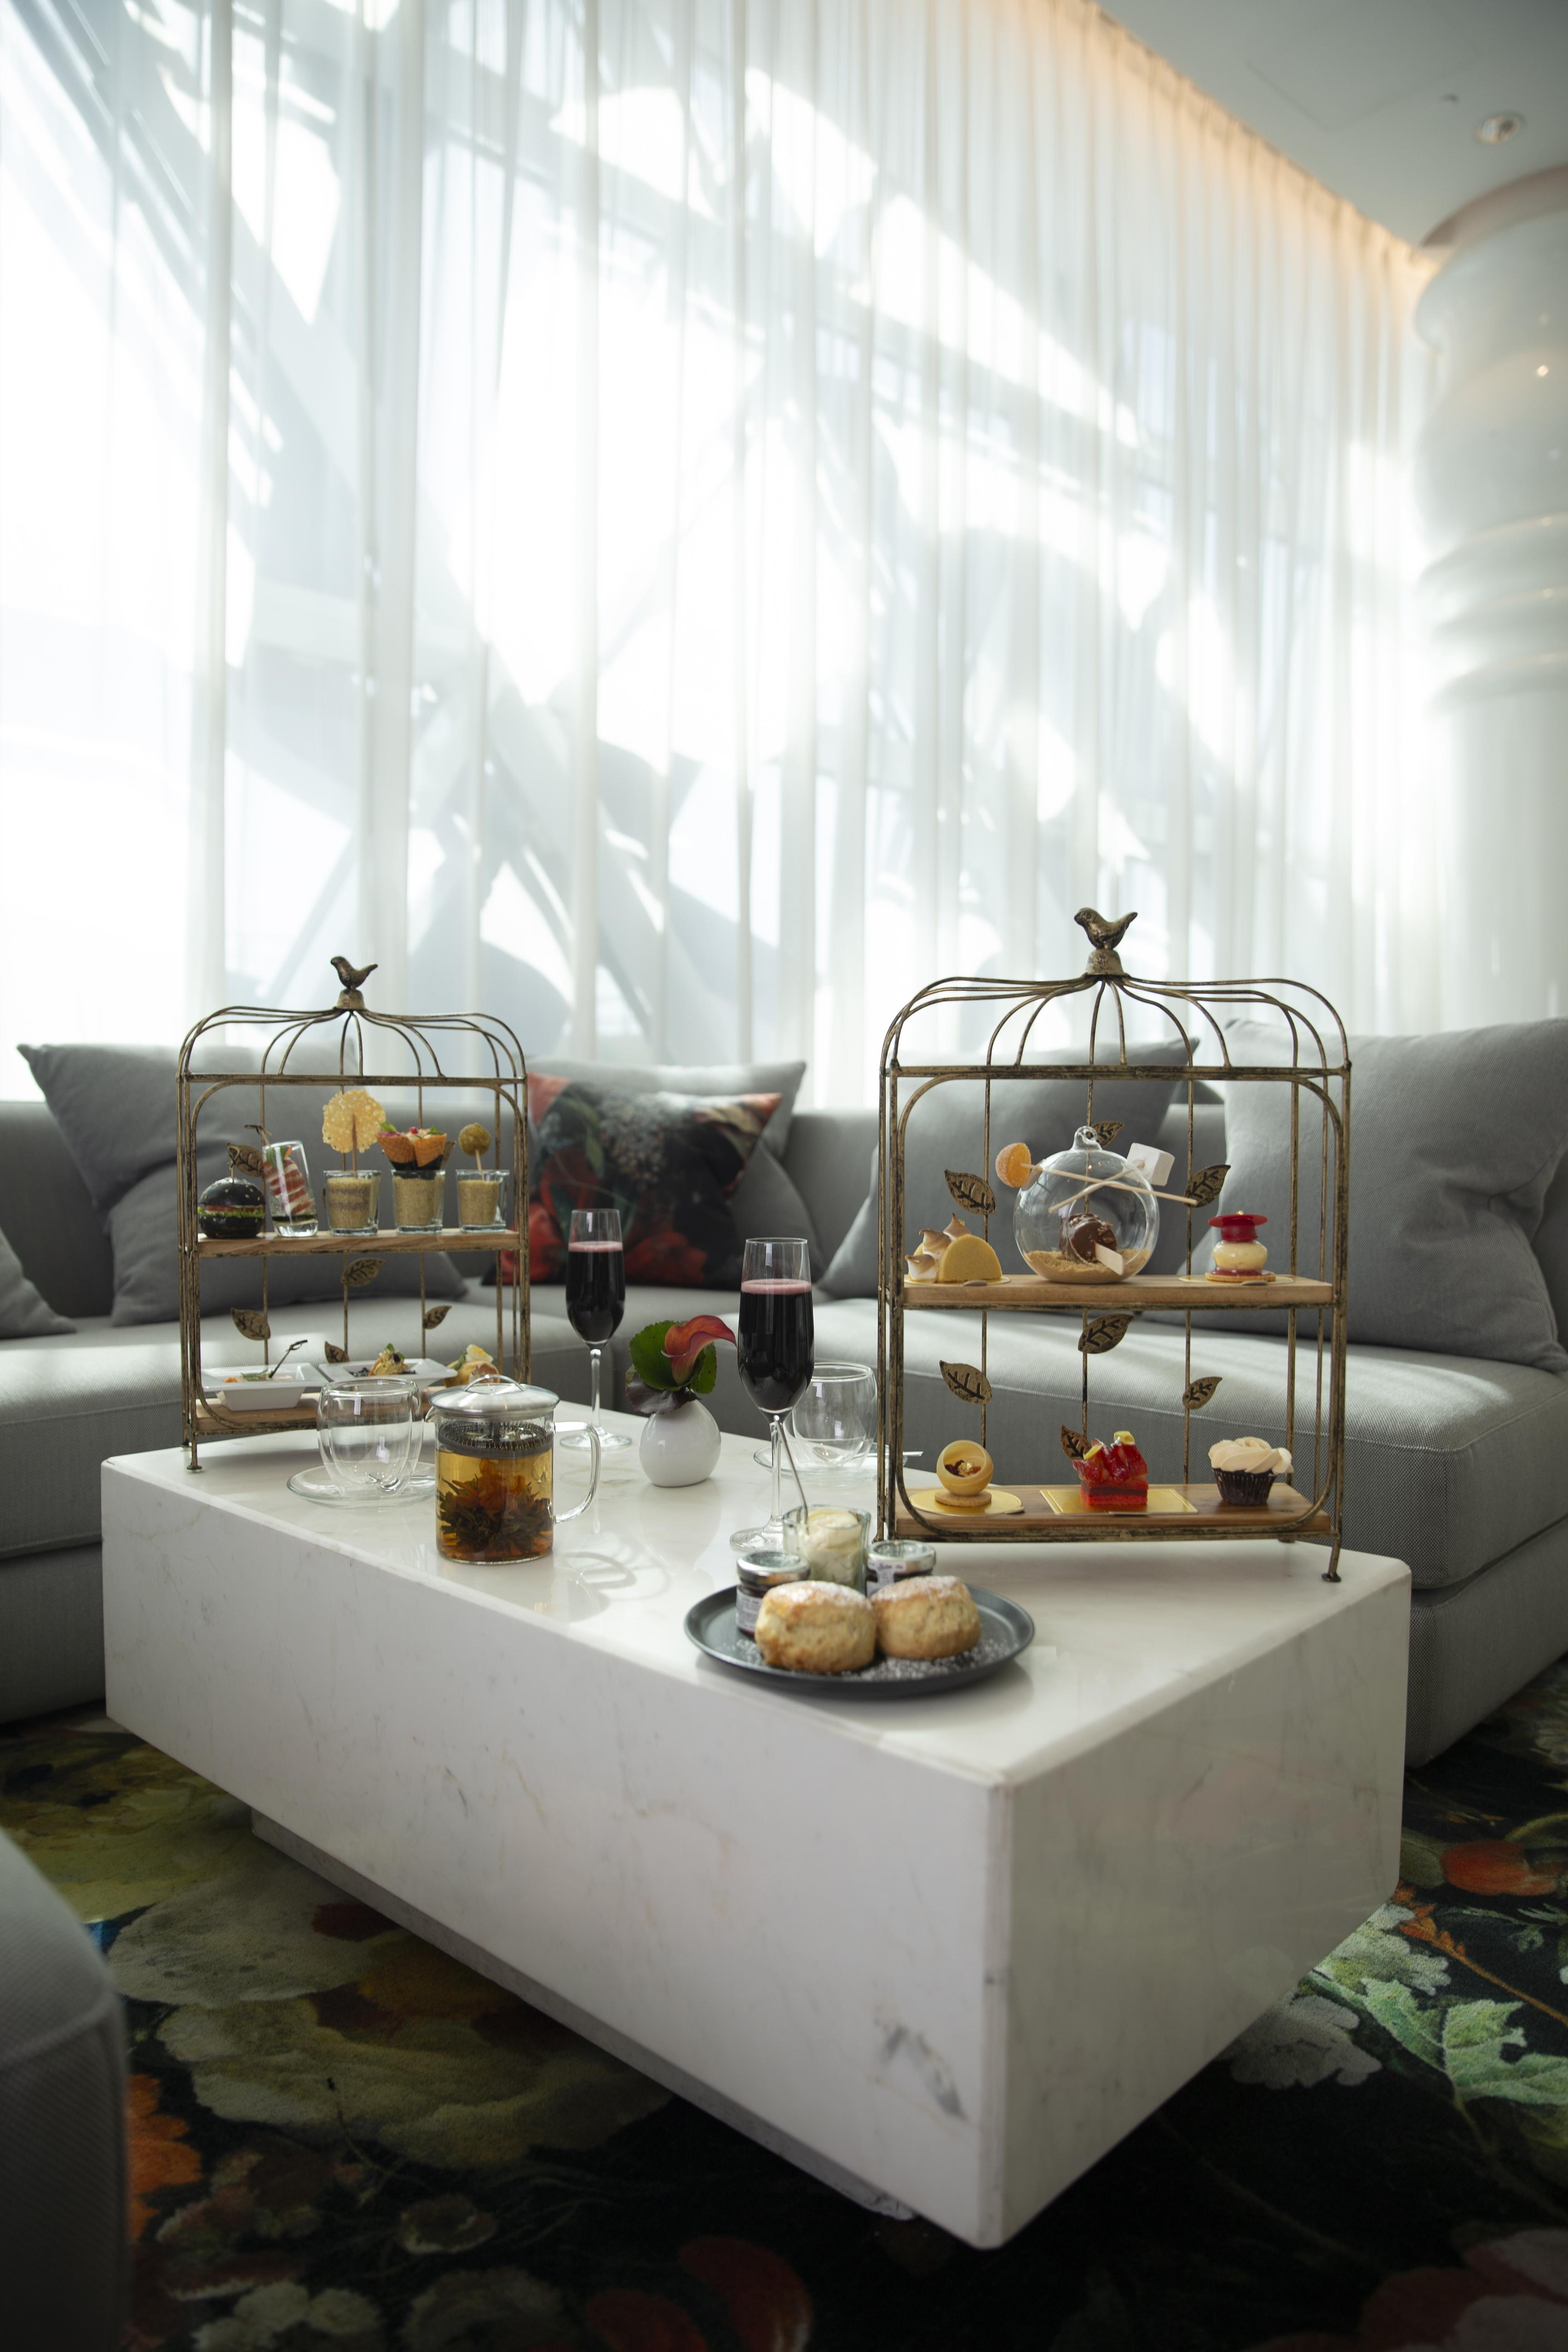 Afternoon high-tea set with elegant decorations and desserts.